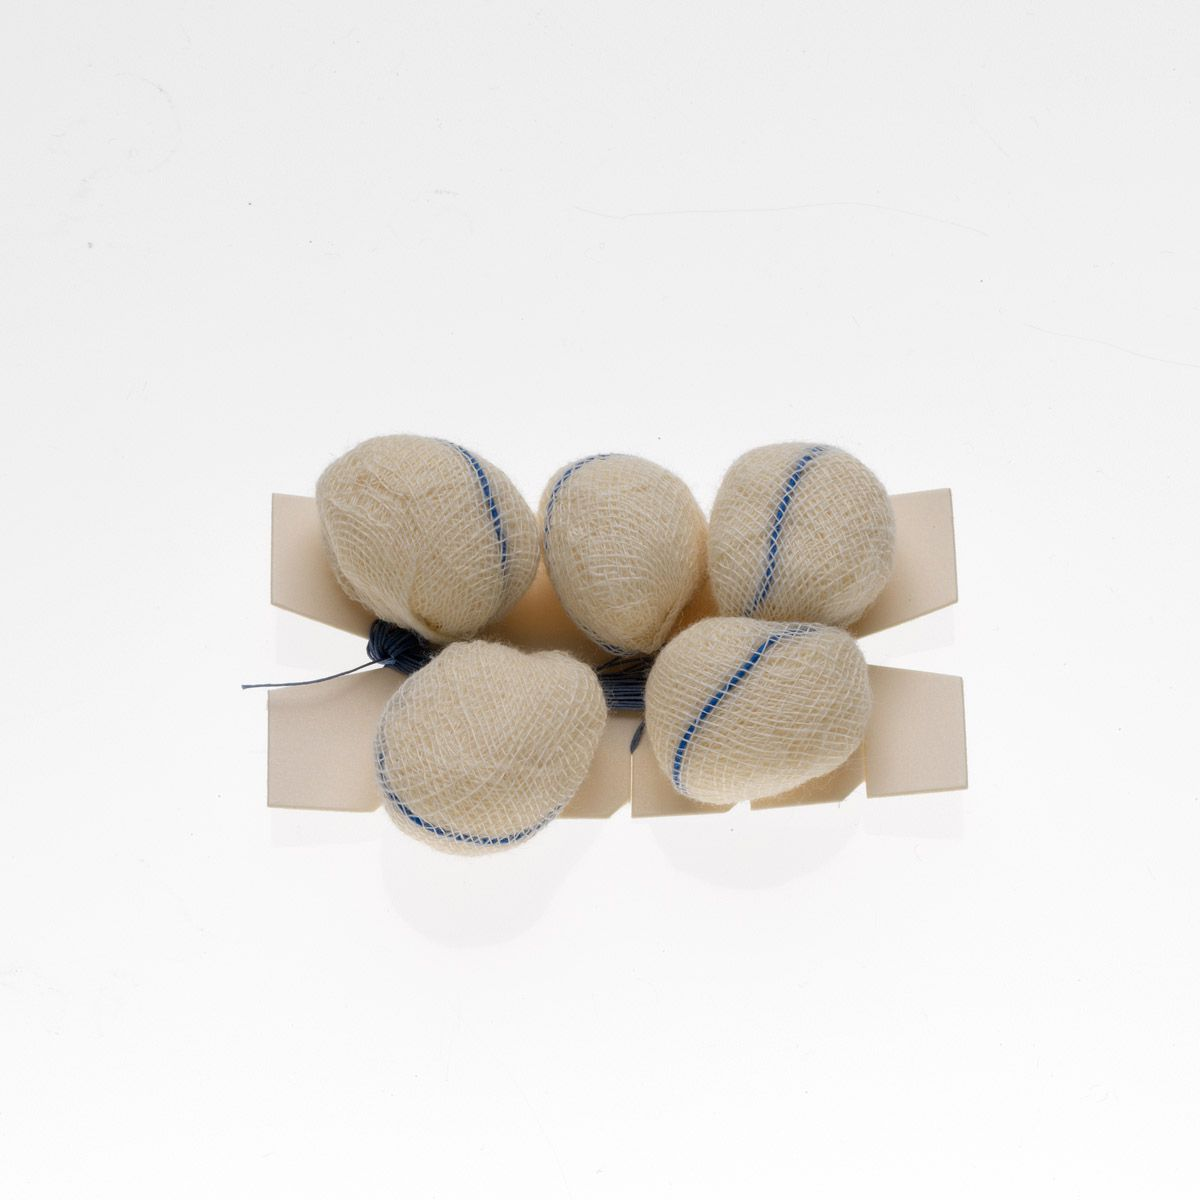 Sterile X-Ray Detectable Tonsil Sponge - Dbl Strng, Xr, Sm, 3/4